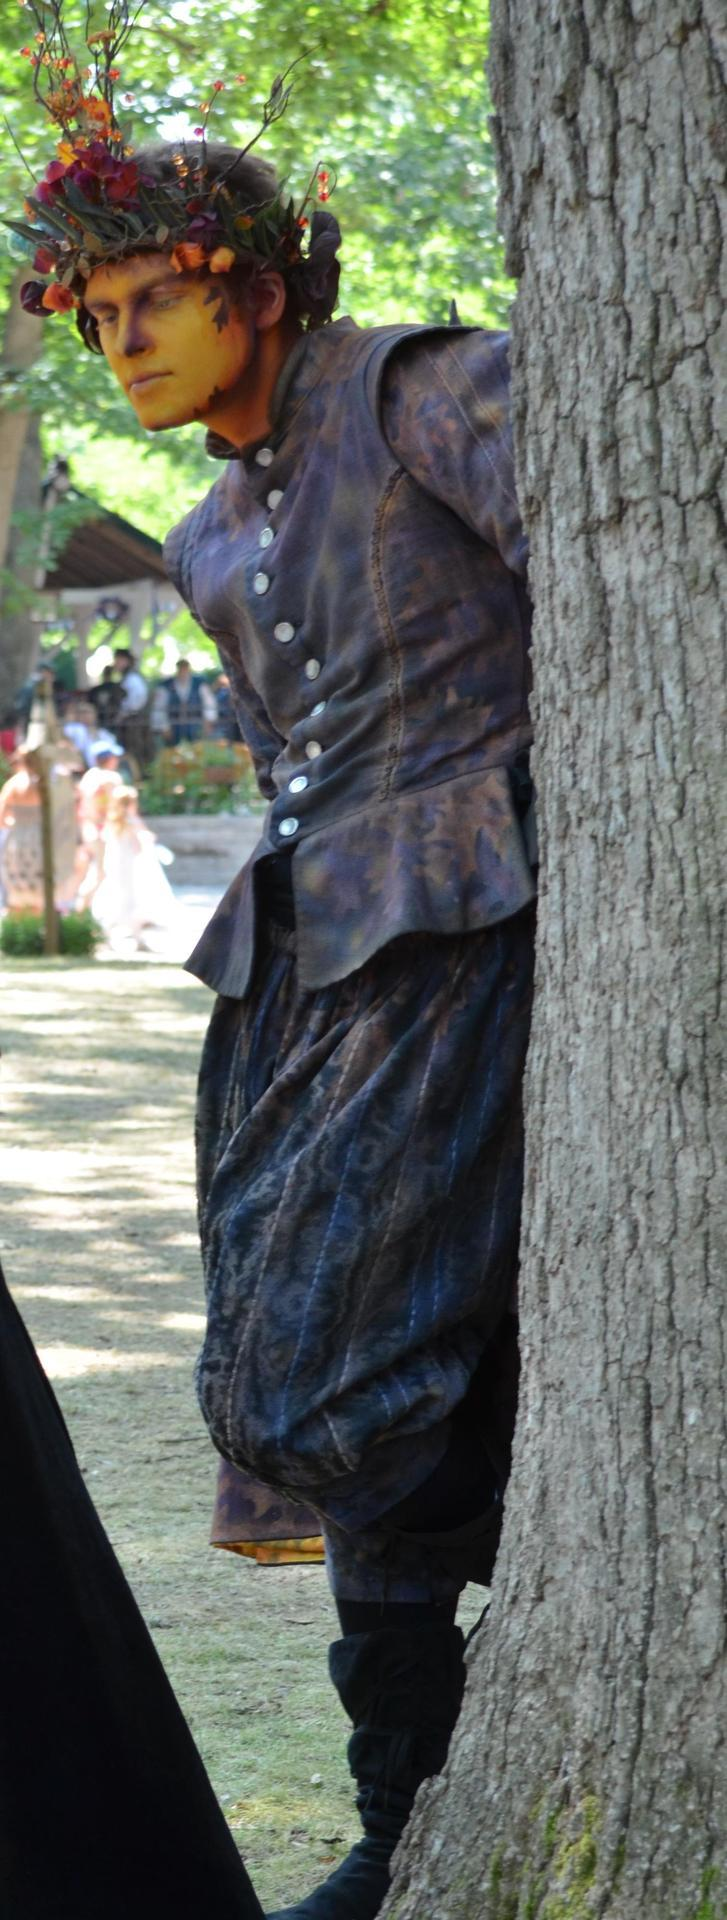 theangel24601:  Oberon the Fairy King at the Bristol Renaissance Faire I feel like my picture don't do this man's makeup or acting any justice. He was amazing. His interaction with the kids was hilarious, and I kept wanting to touch him because he looked so unreal.  Also helped that he was a handsome sonofabitch! ;)